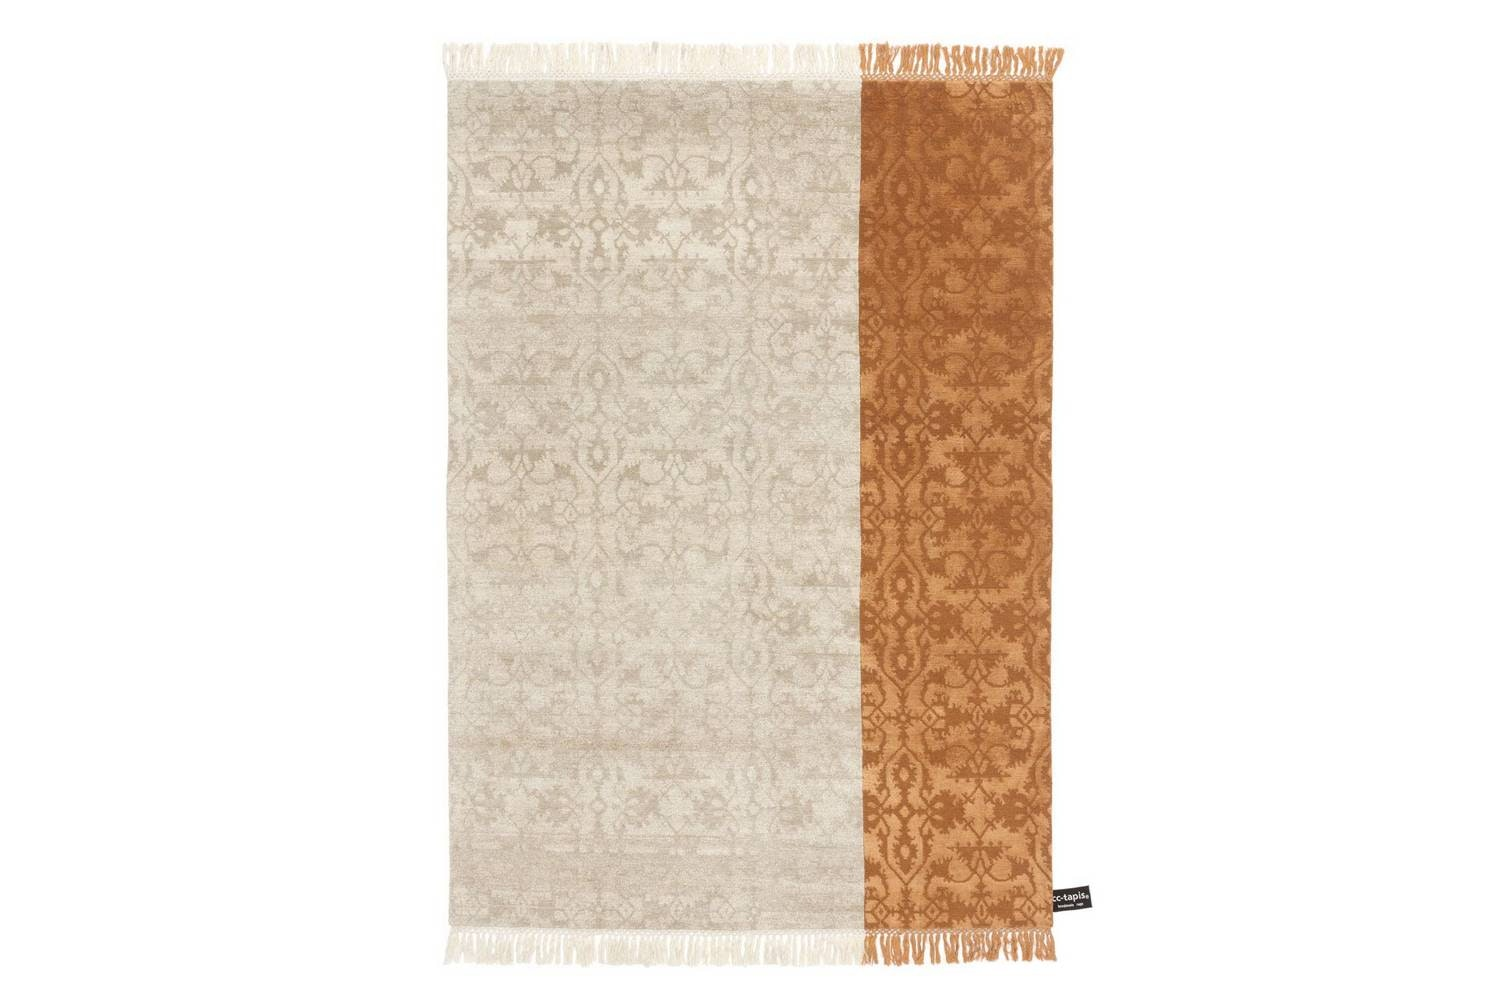 Dipped Lotto Rug by Dipped Collection for CC-Tapis